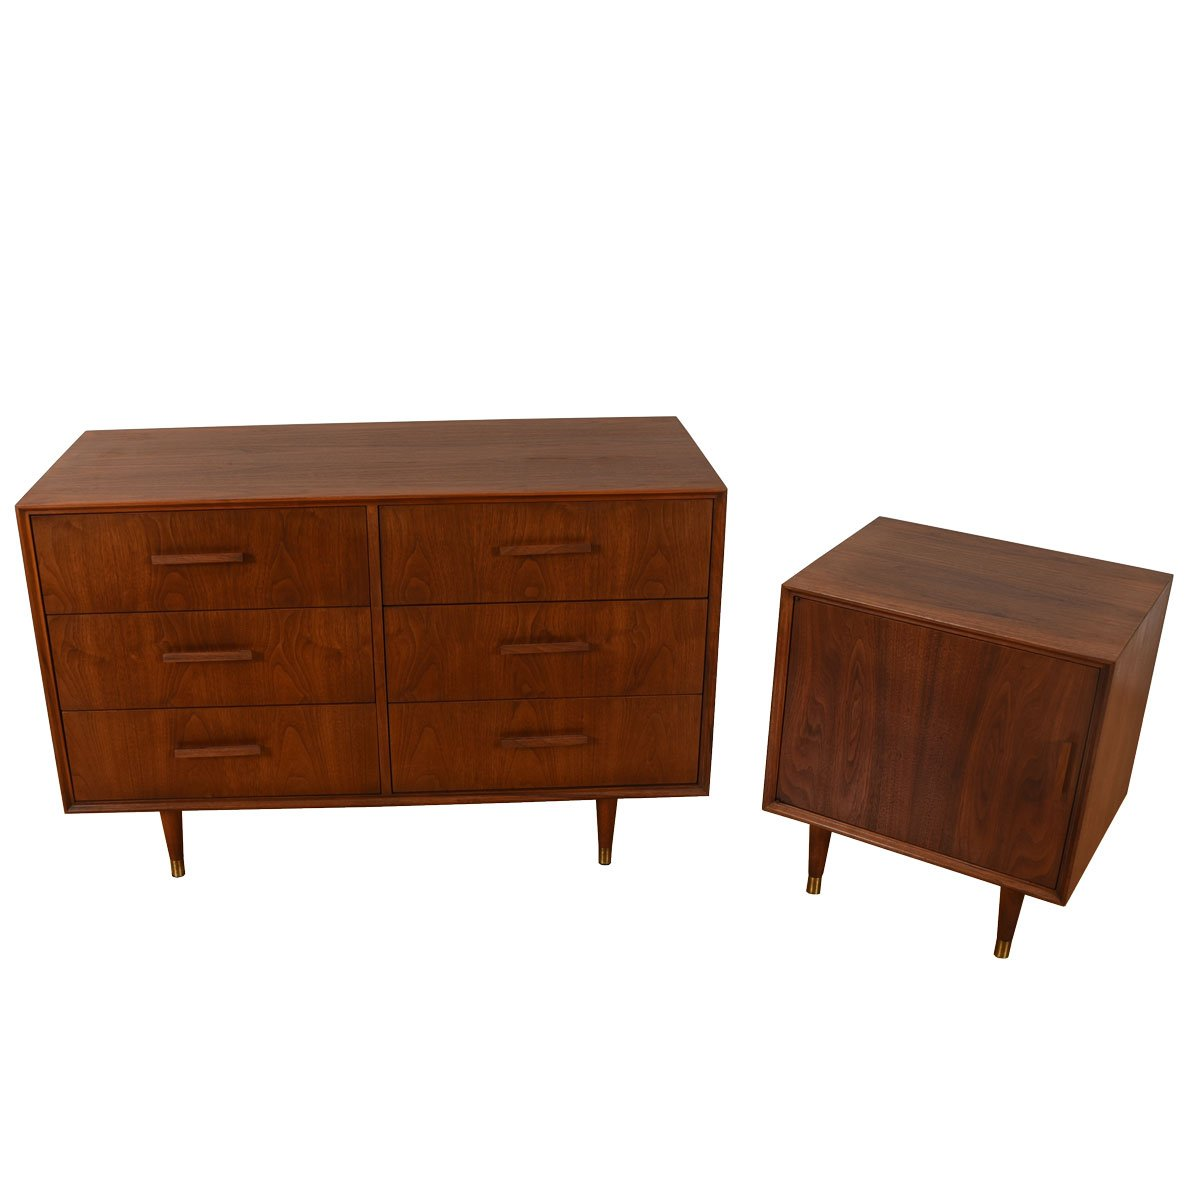 Perfectly Sized 'City-Life' Dresser / Chest